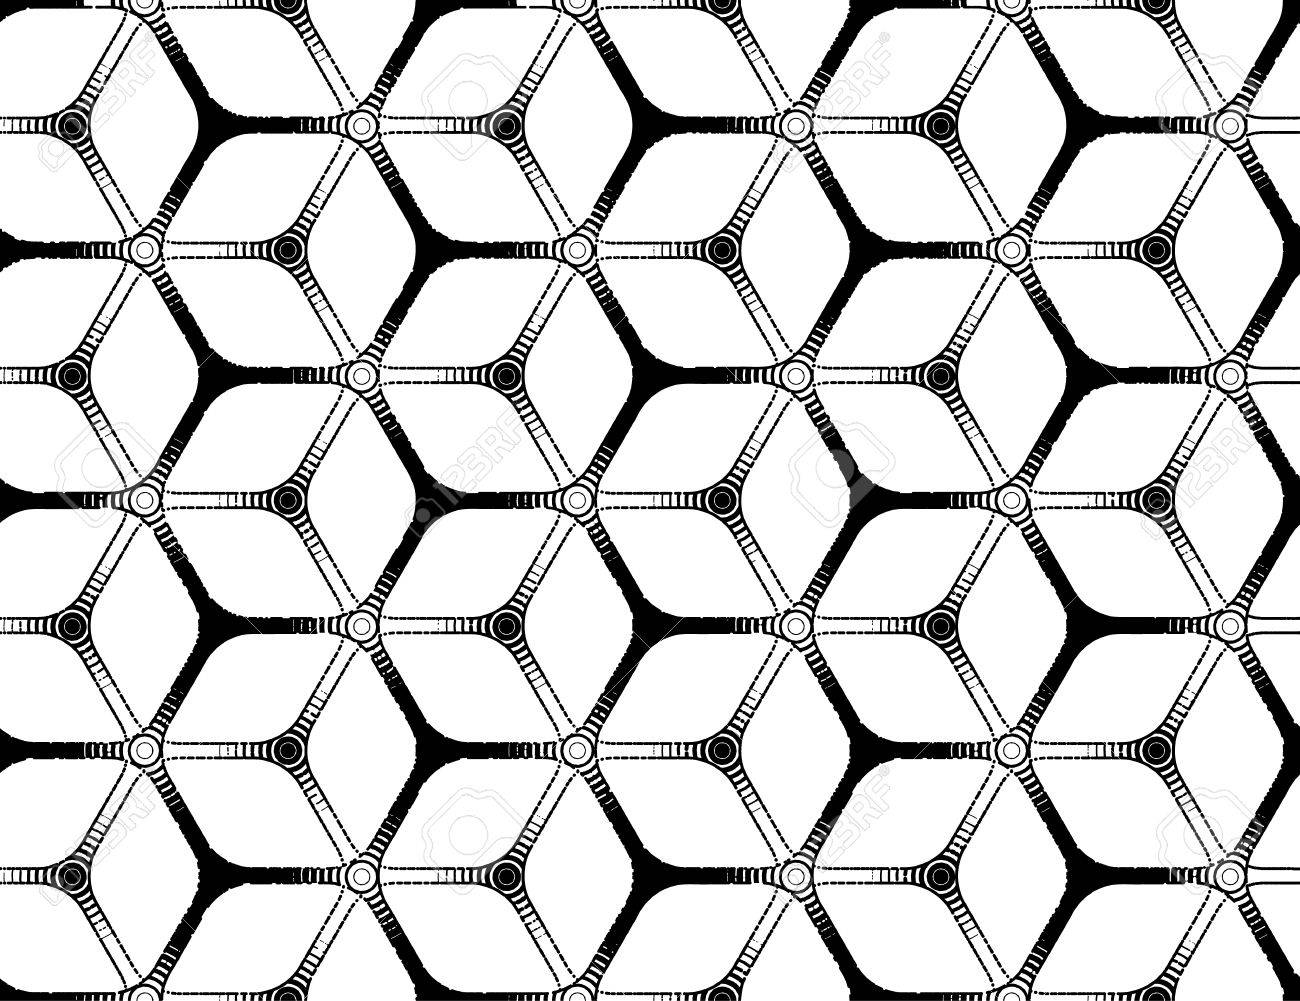 1300x1001 Rough Drawing Styled Futuristic Hexagonal Seamless Grid Royalty